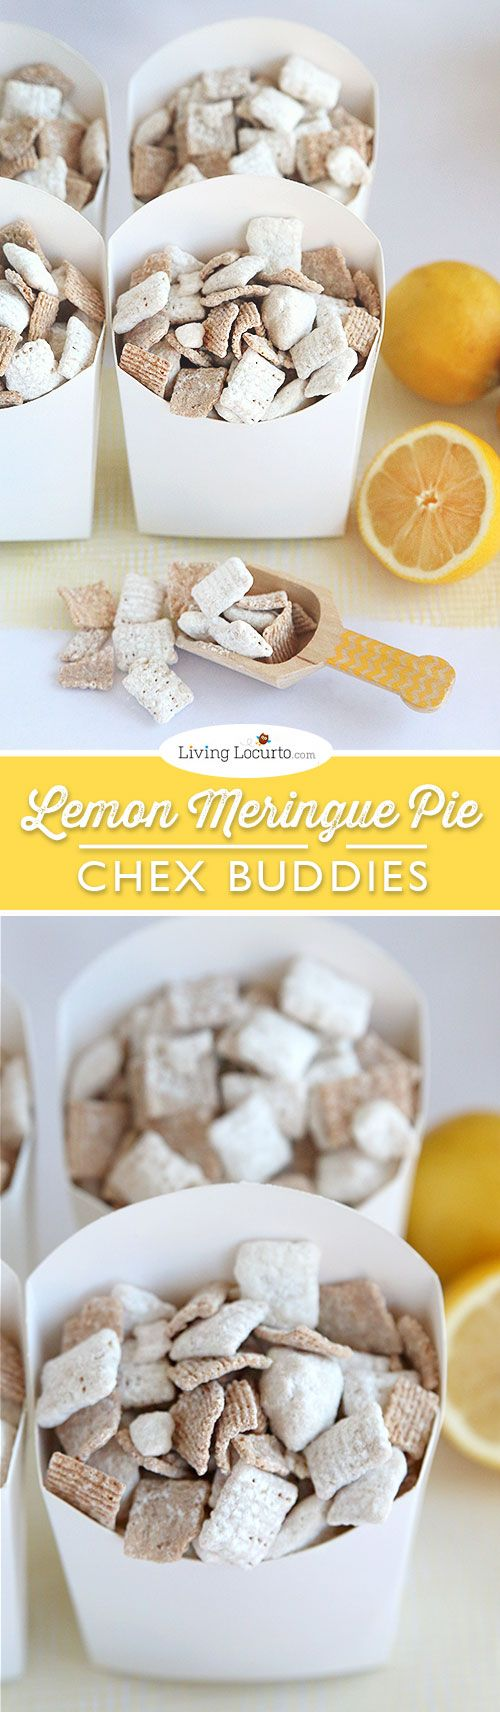 Lemon Meringue Pie Chex Party Mix Recipe. The best no bake Chex Buddies ever! LivingLocurto.com